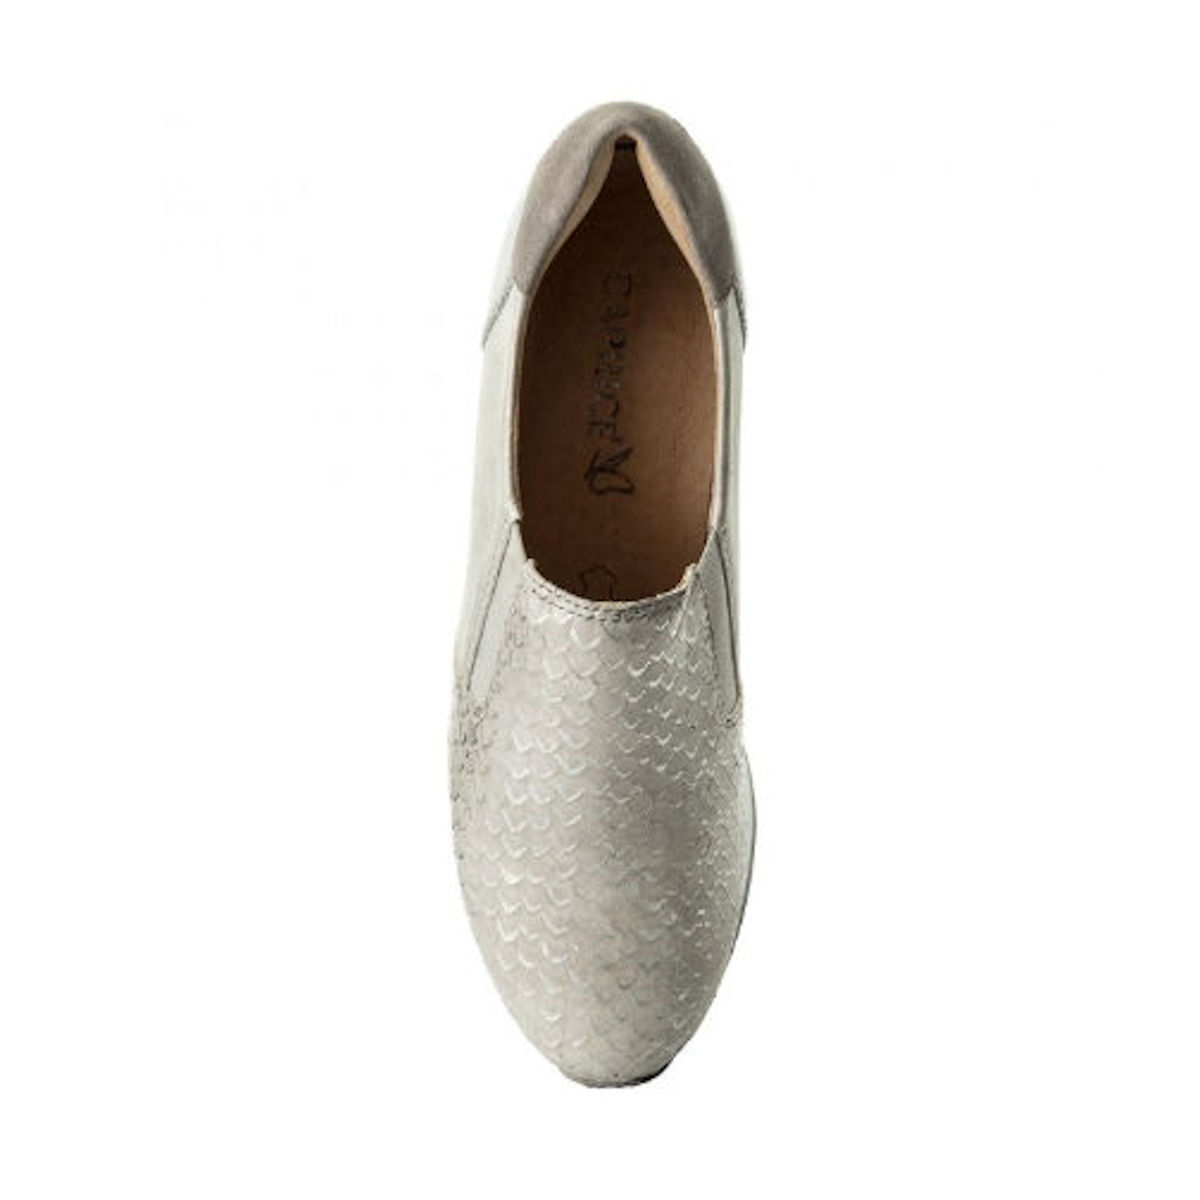 Caprice 9-24603-20 - Light Grey Leather Shoes